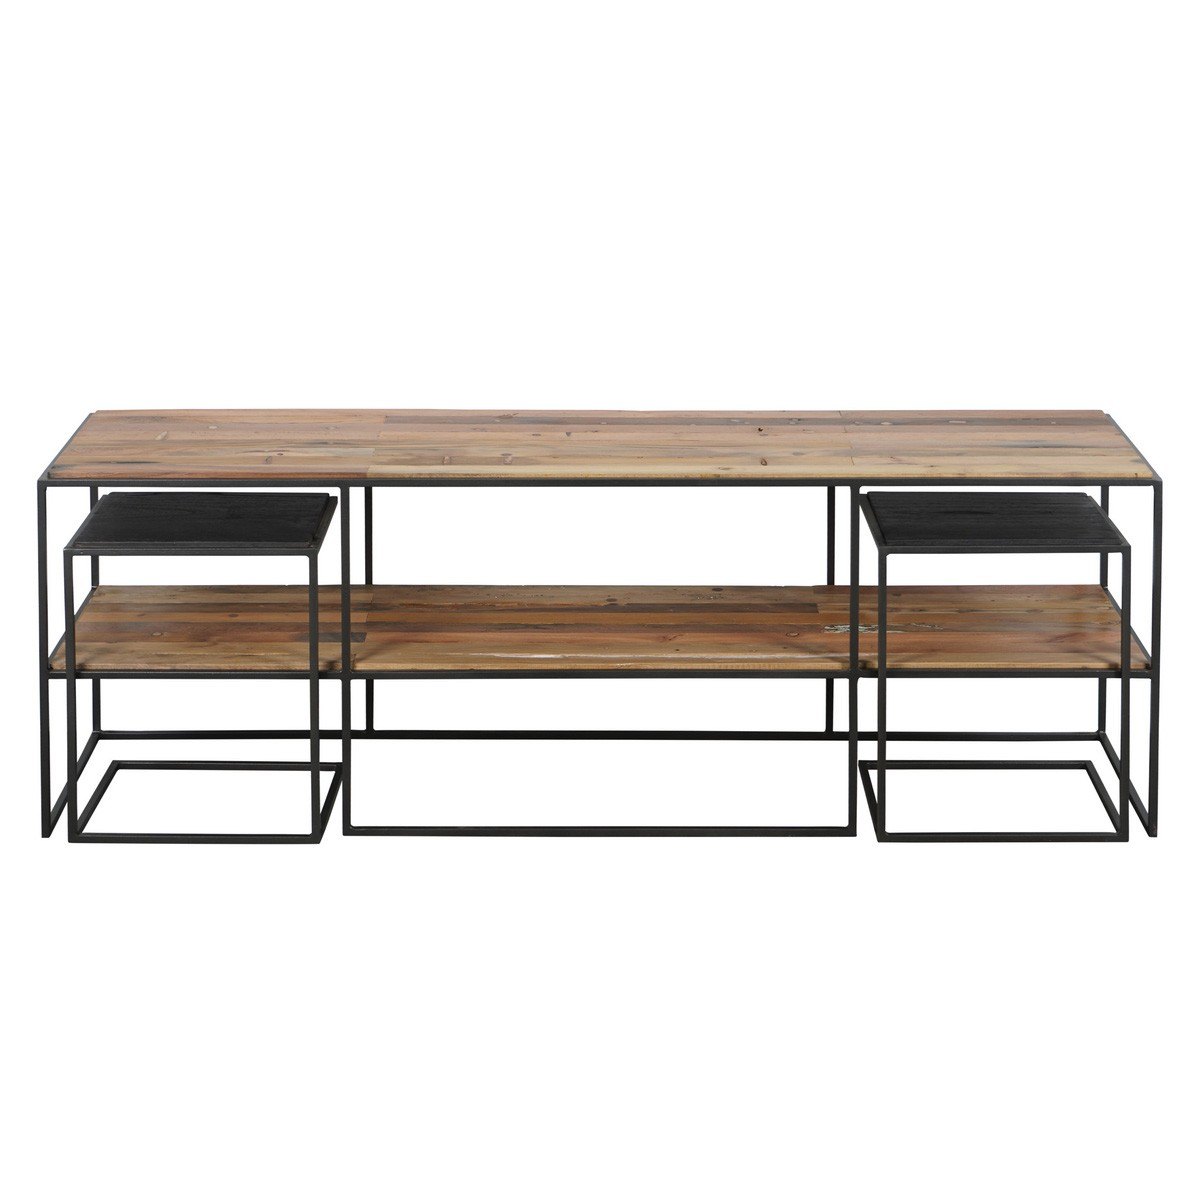 Sublime Commercial Grade Recycled Timber & Steel 3 Piece TV Unit & Side Table Set, 160cm